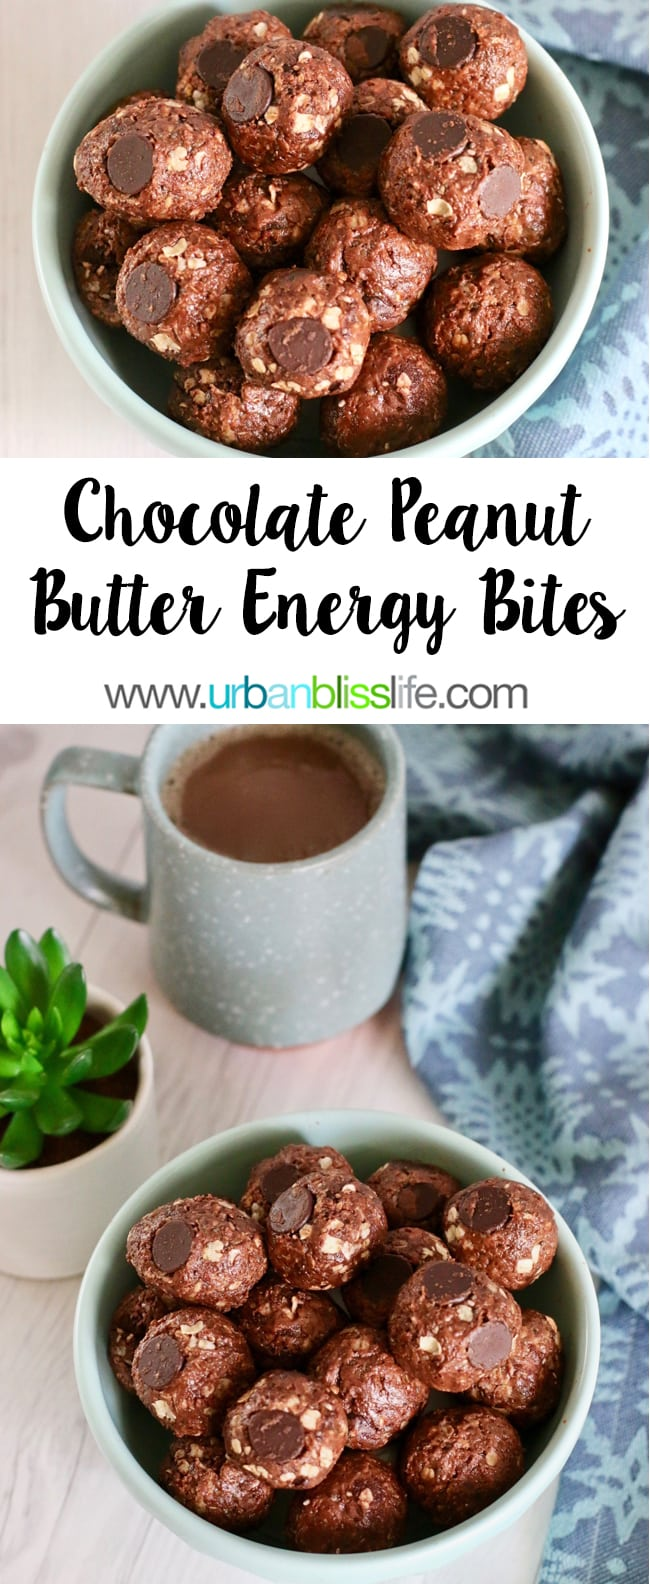 Chocolate Peanut Butter Energy Balls recipe on UrbanBlissLife.com